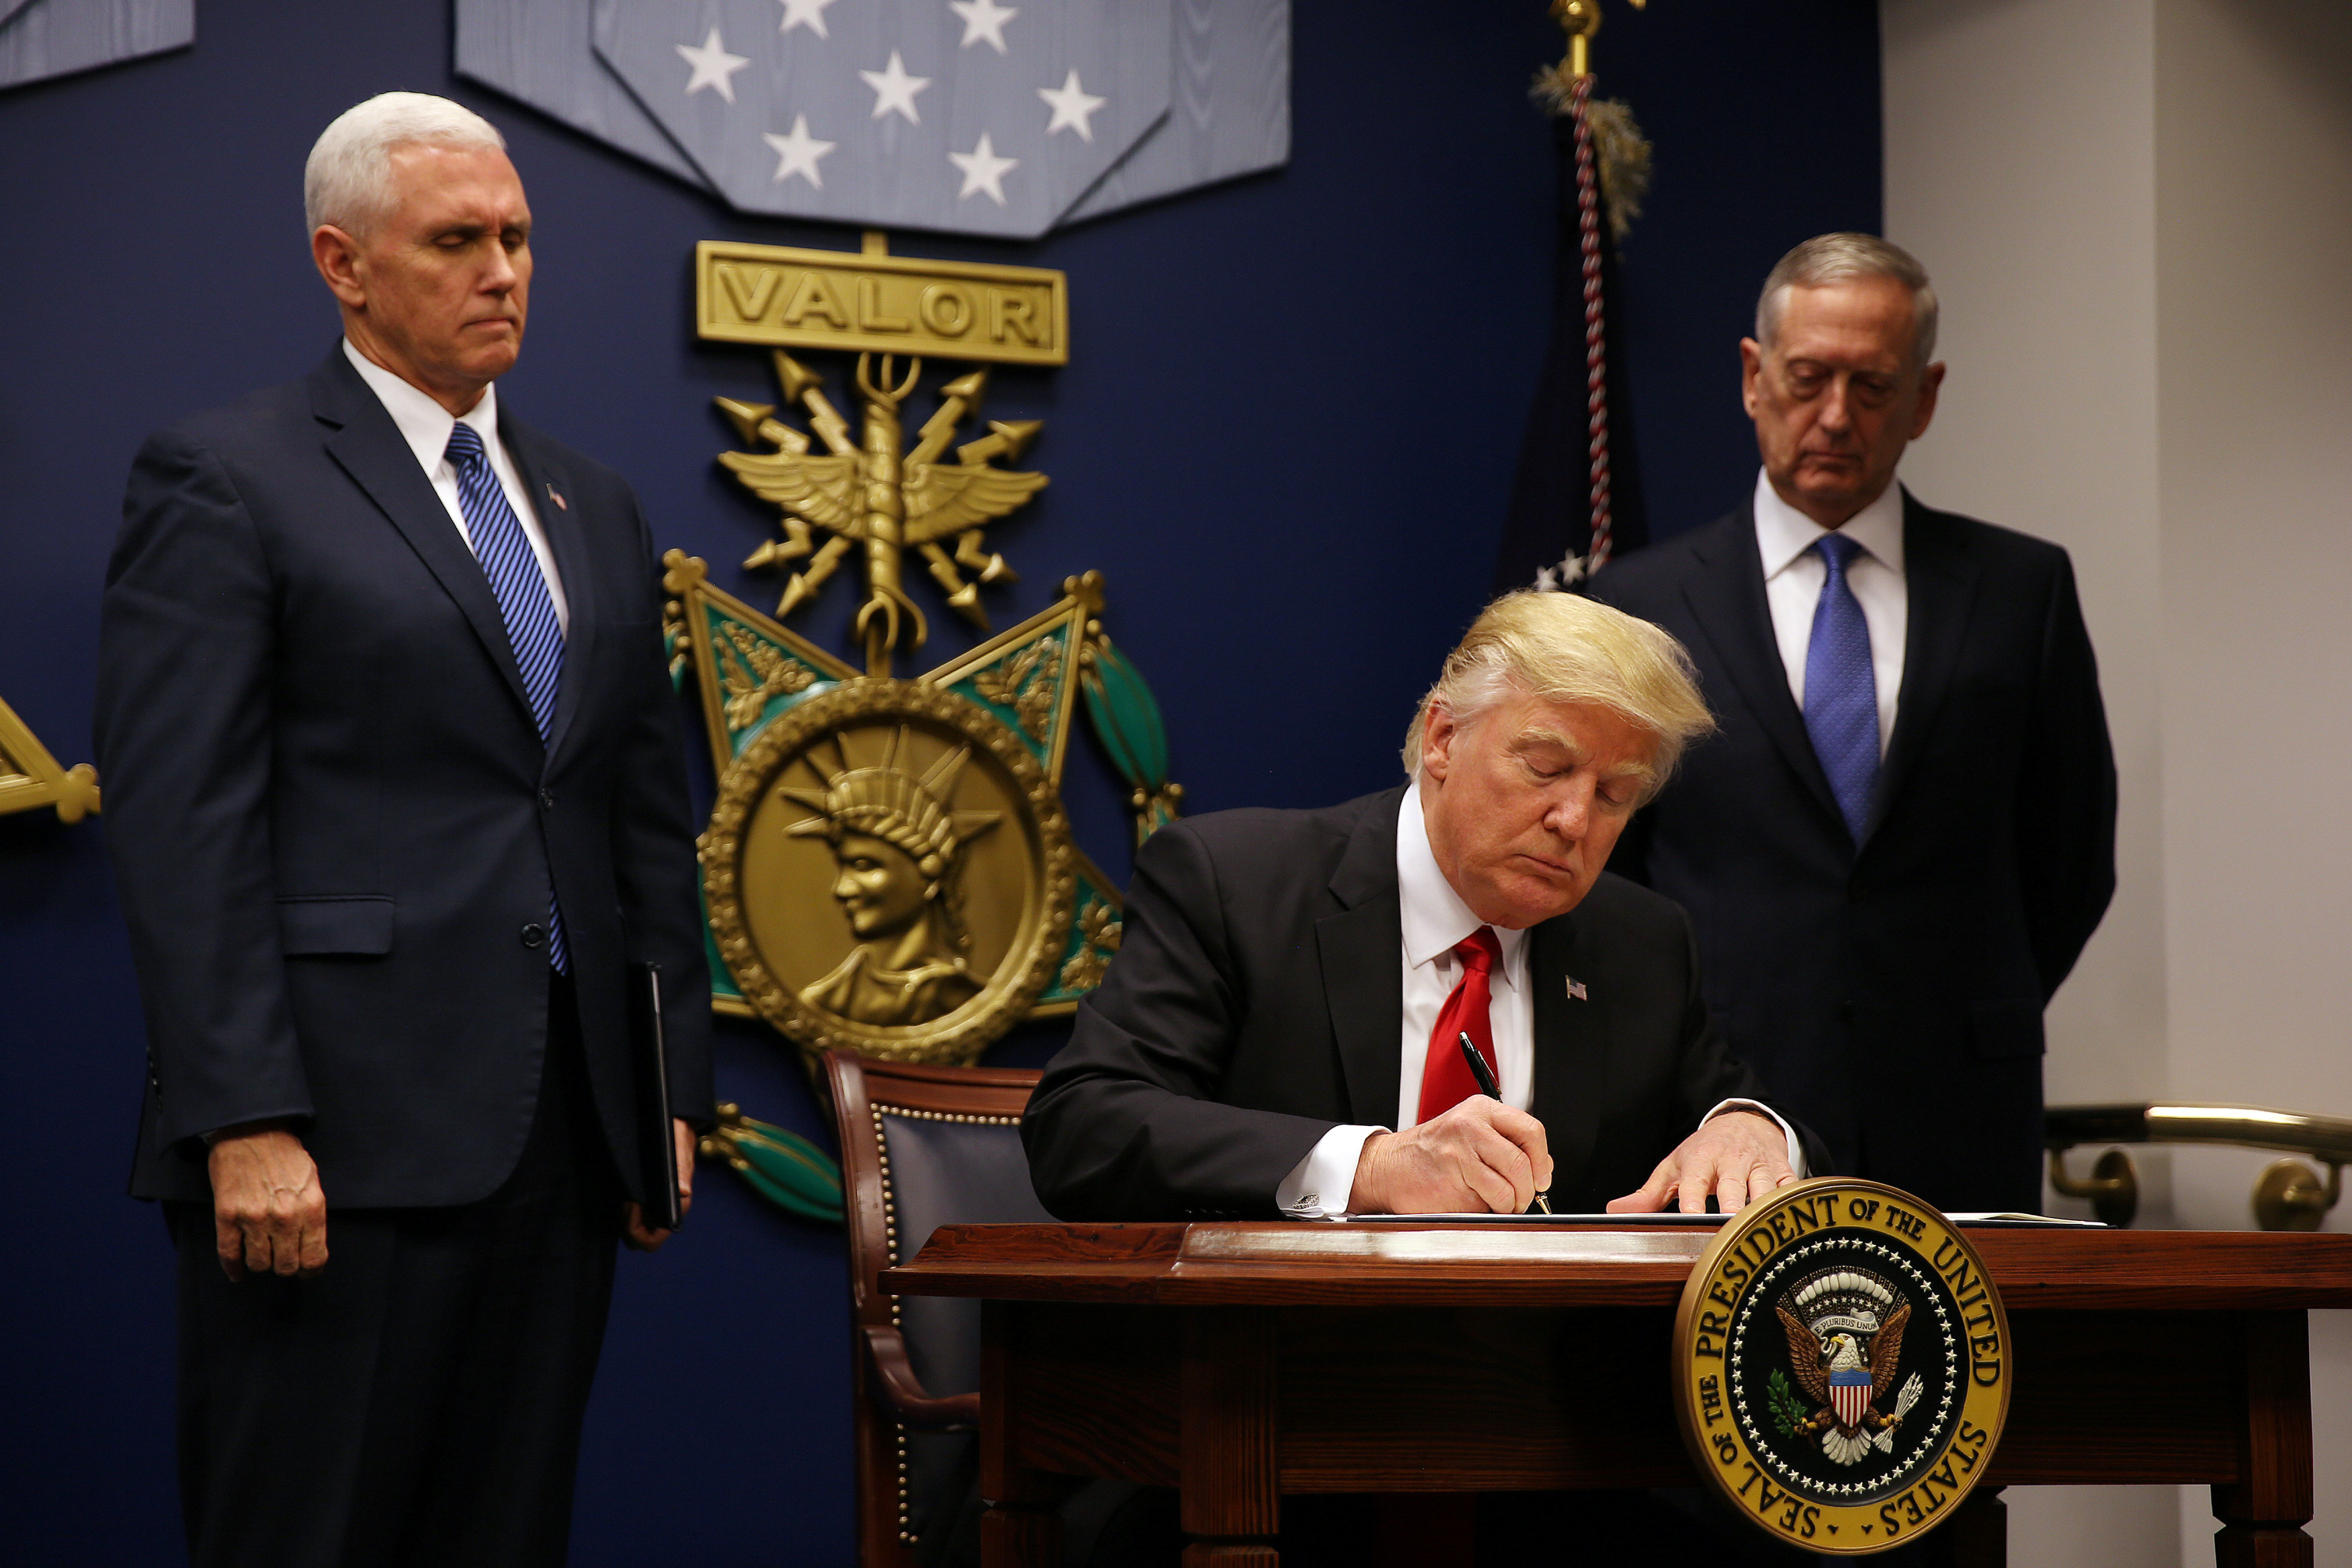 Trump's revised travel ban targets citizens of six Muslim-majority nations